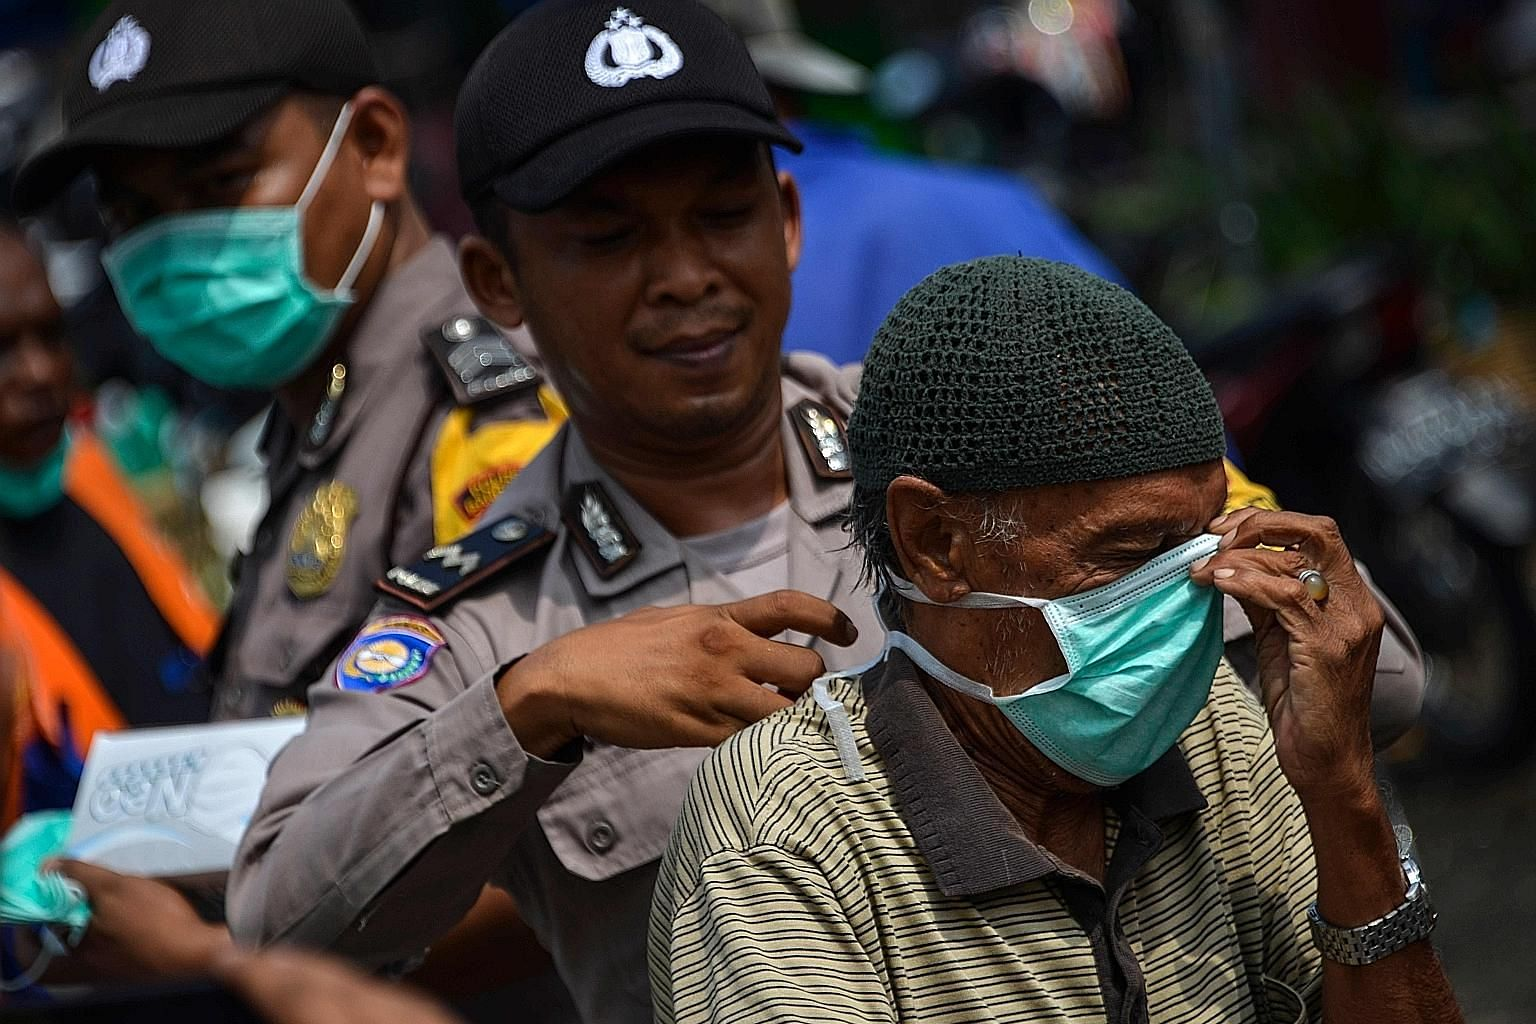 A police officer helping a motorist put on a face mask in Banda Aceh, in Sumatra, yesterday. There were 3,150 hot spots across Indonesia on Monday. But by Tuesday, the number had dropped sharply to 1,982 before slipping to 1,744 yesterday, Indonesia'